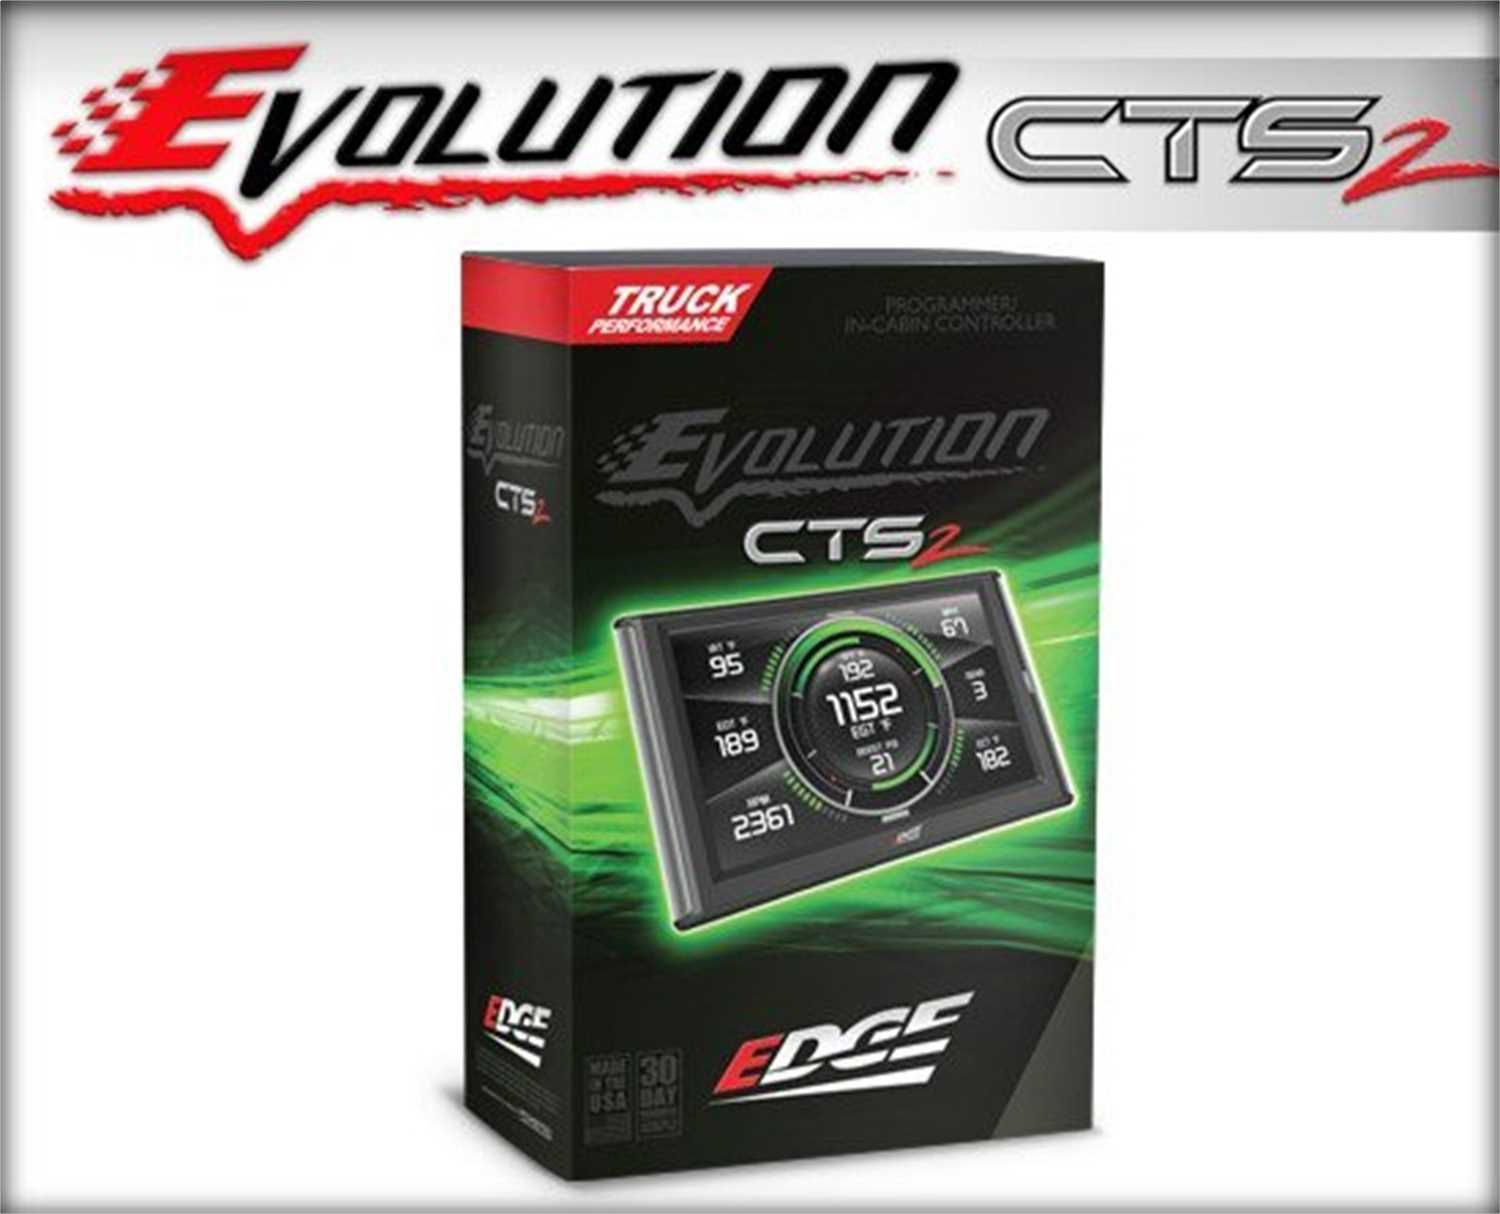 Edge Products CTS2 Gas Evolution Programmer 85450